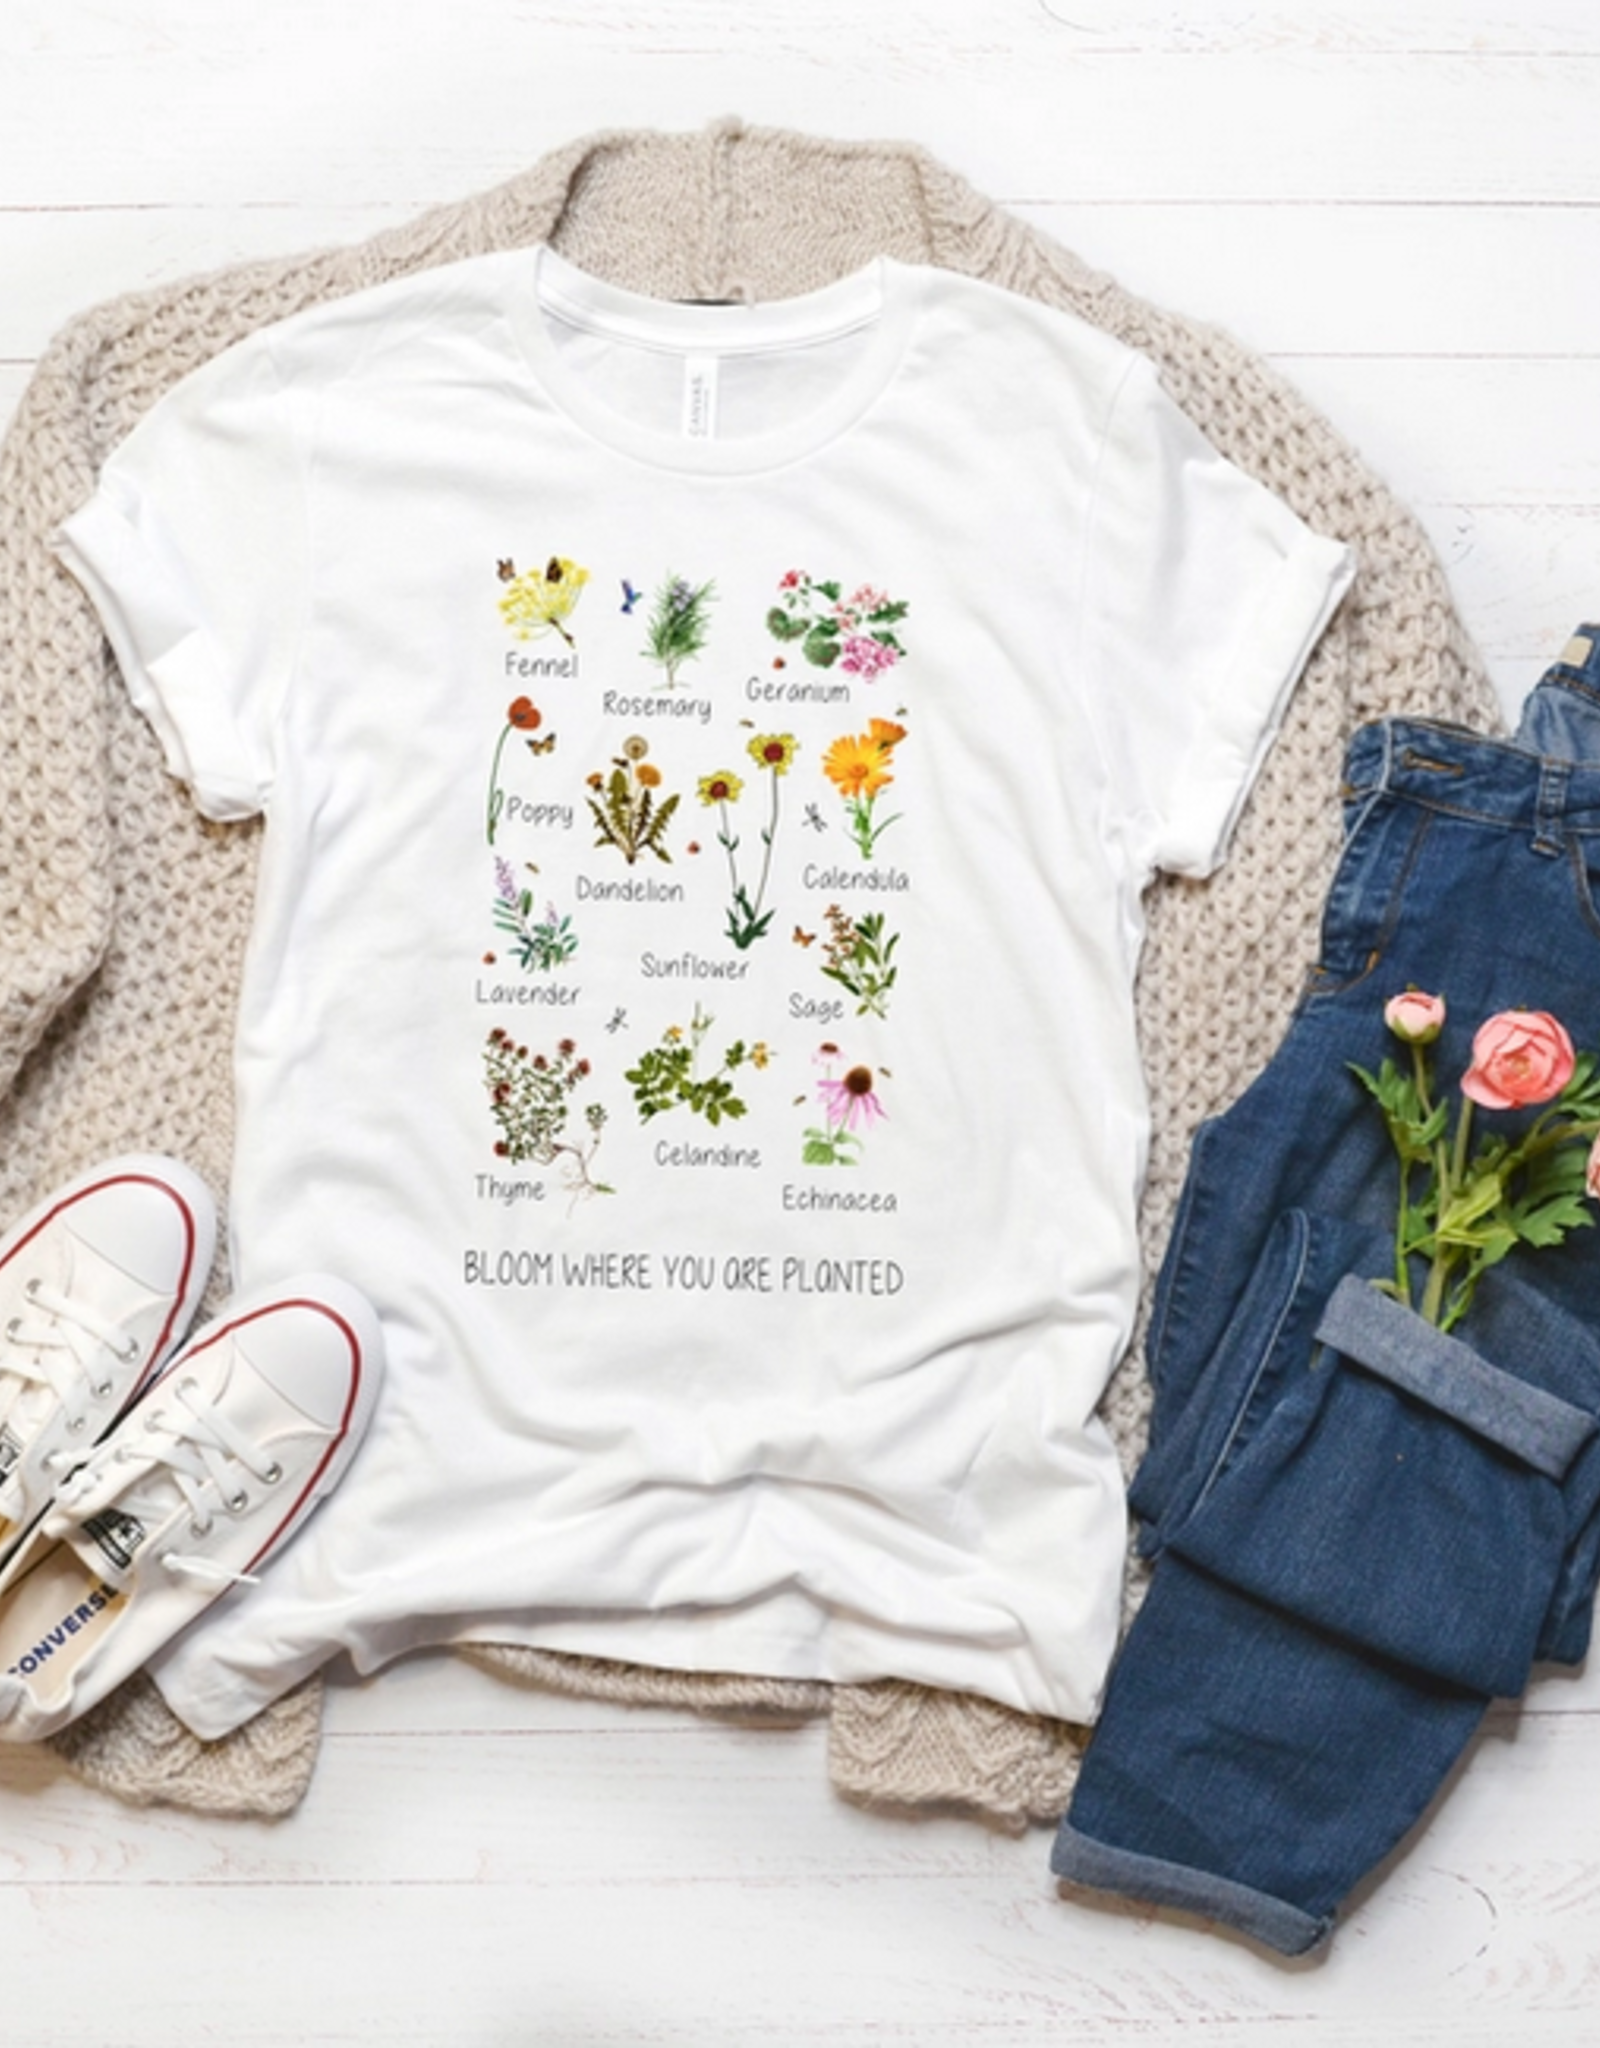 Midwest Tees Bloom Where You Are Planted Tee